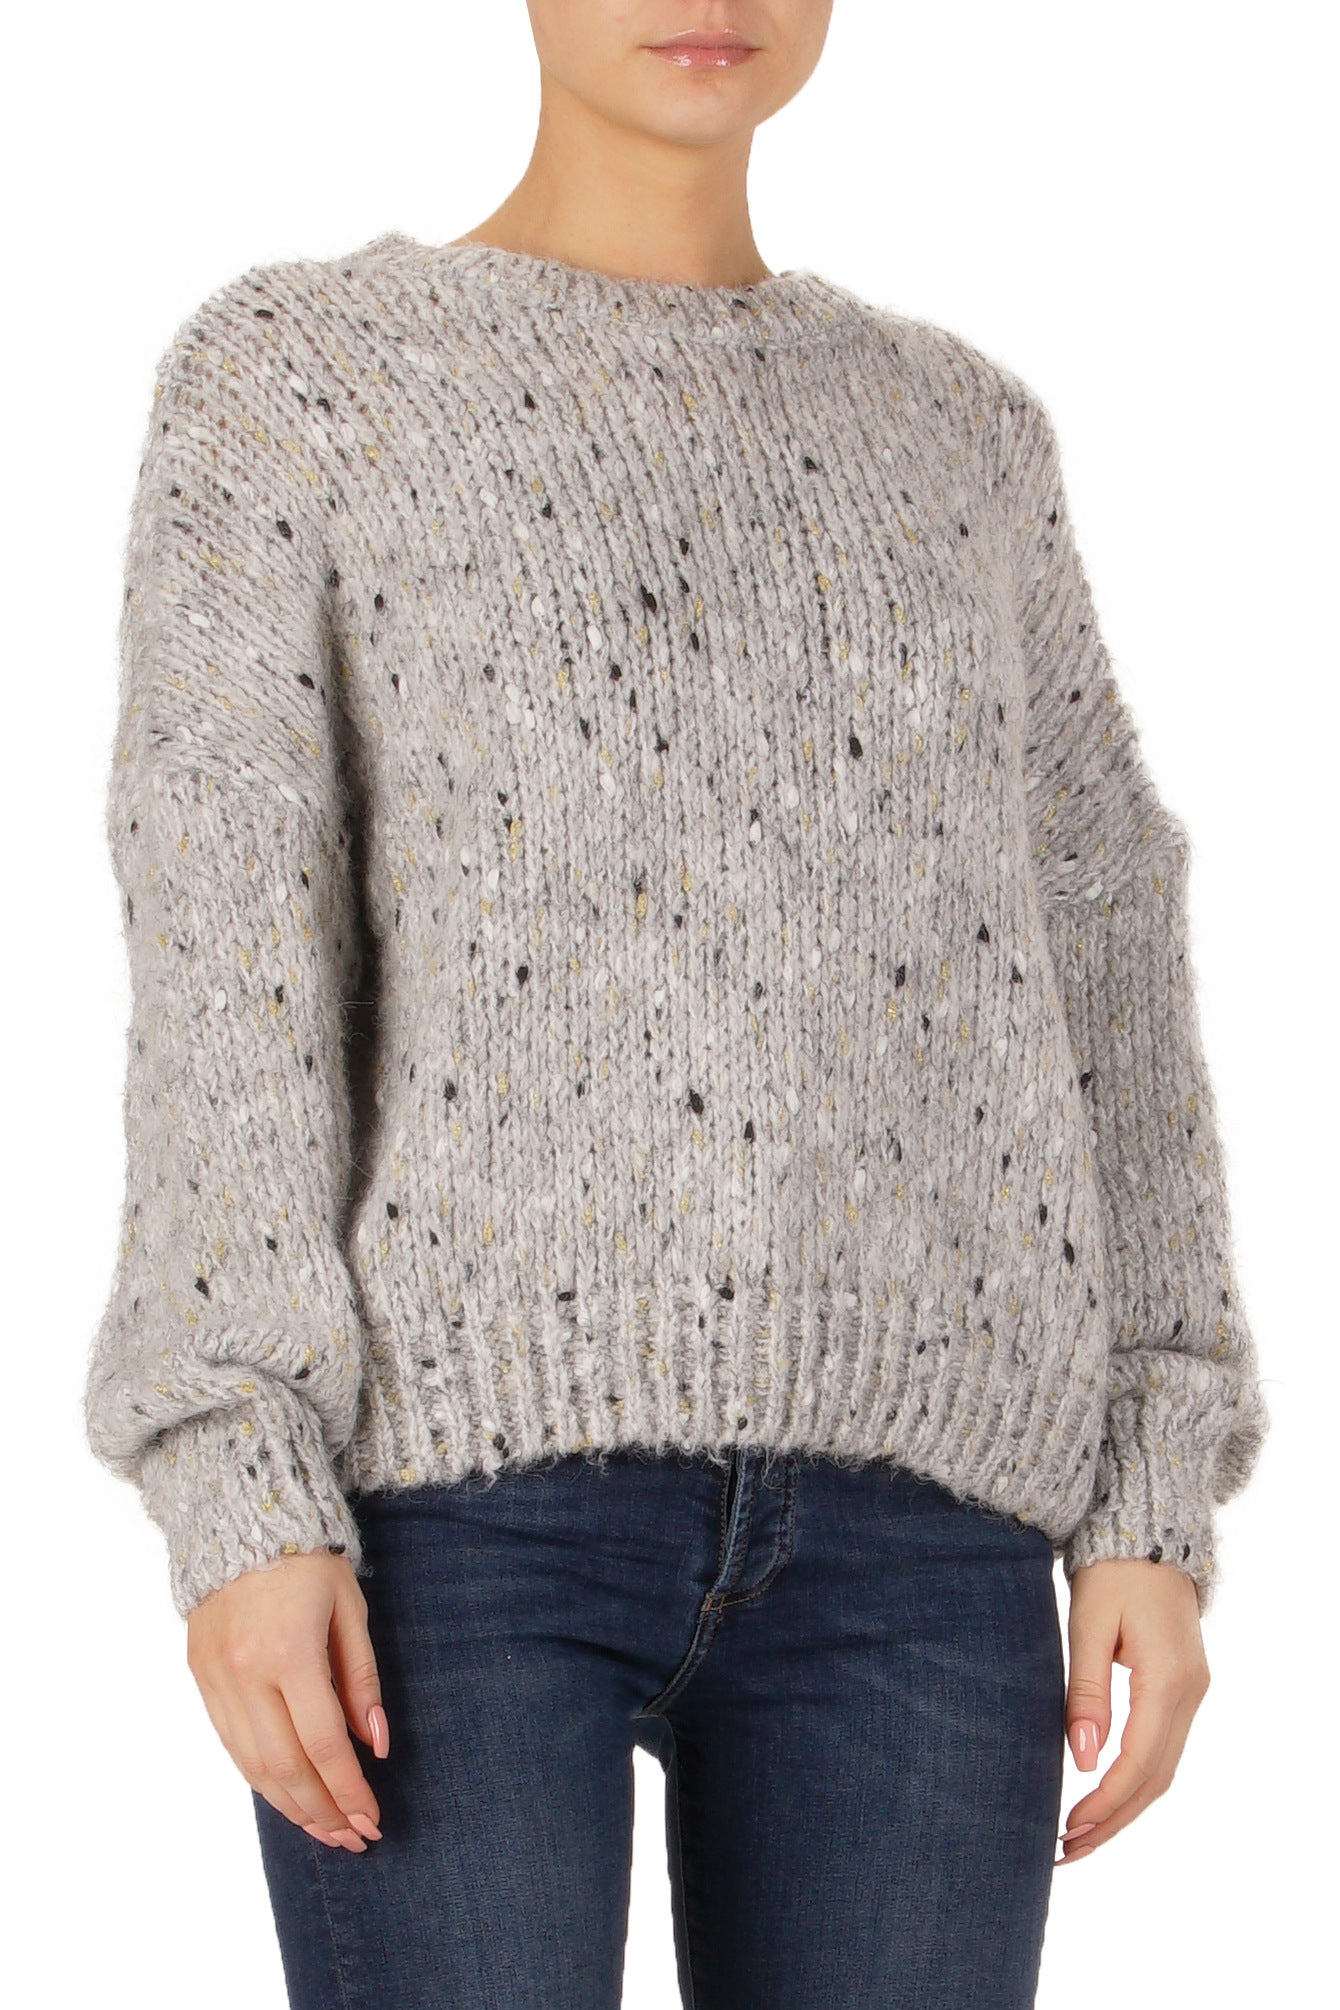 GREY SPECKLE SWEATER